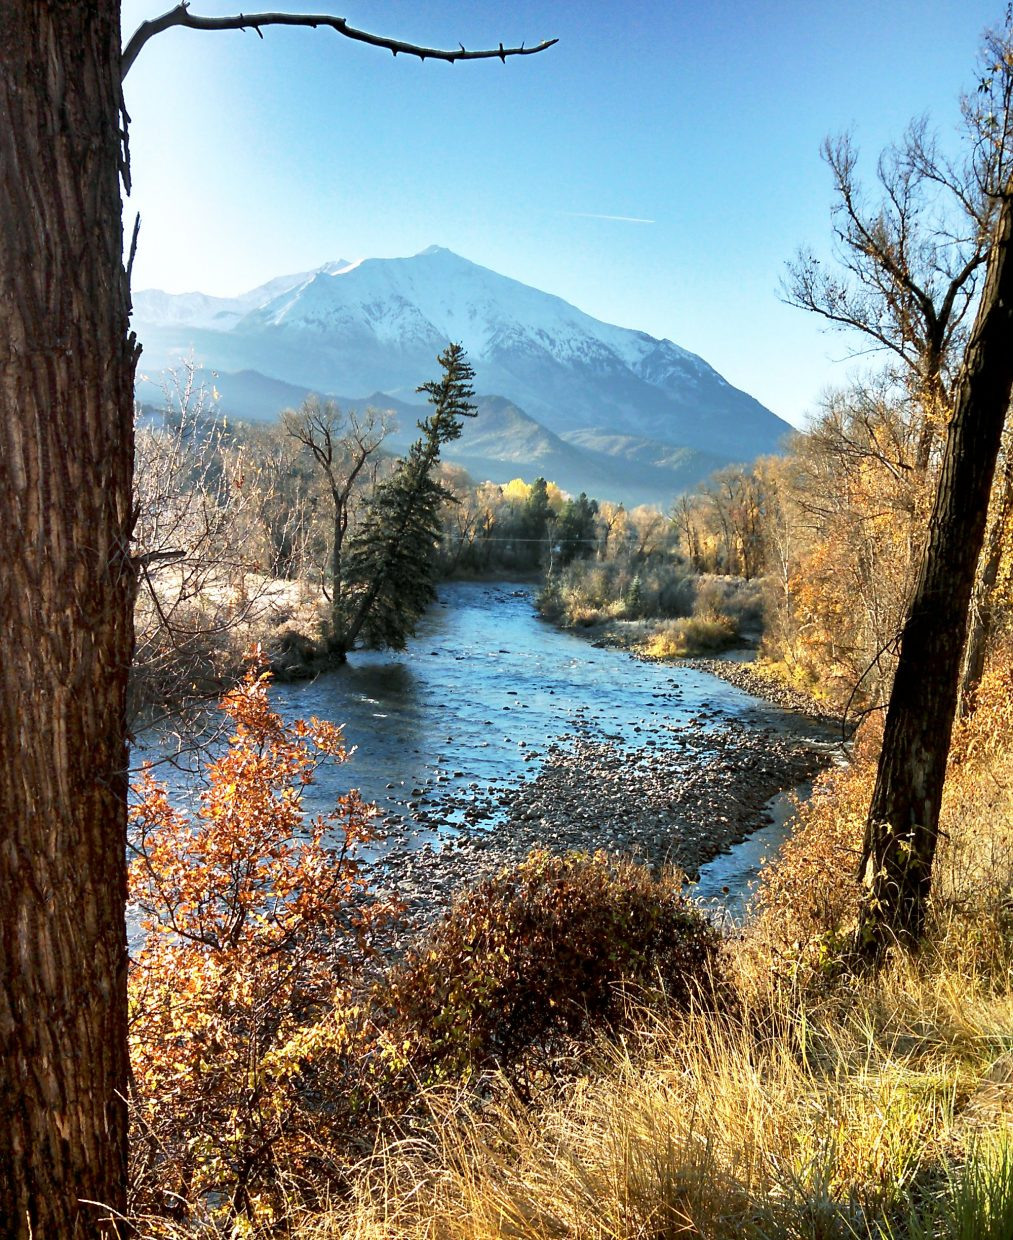 The Crystal River Valley and Mount Sopris' fresh snow made a spectacular scene Saturday morning.